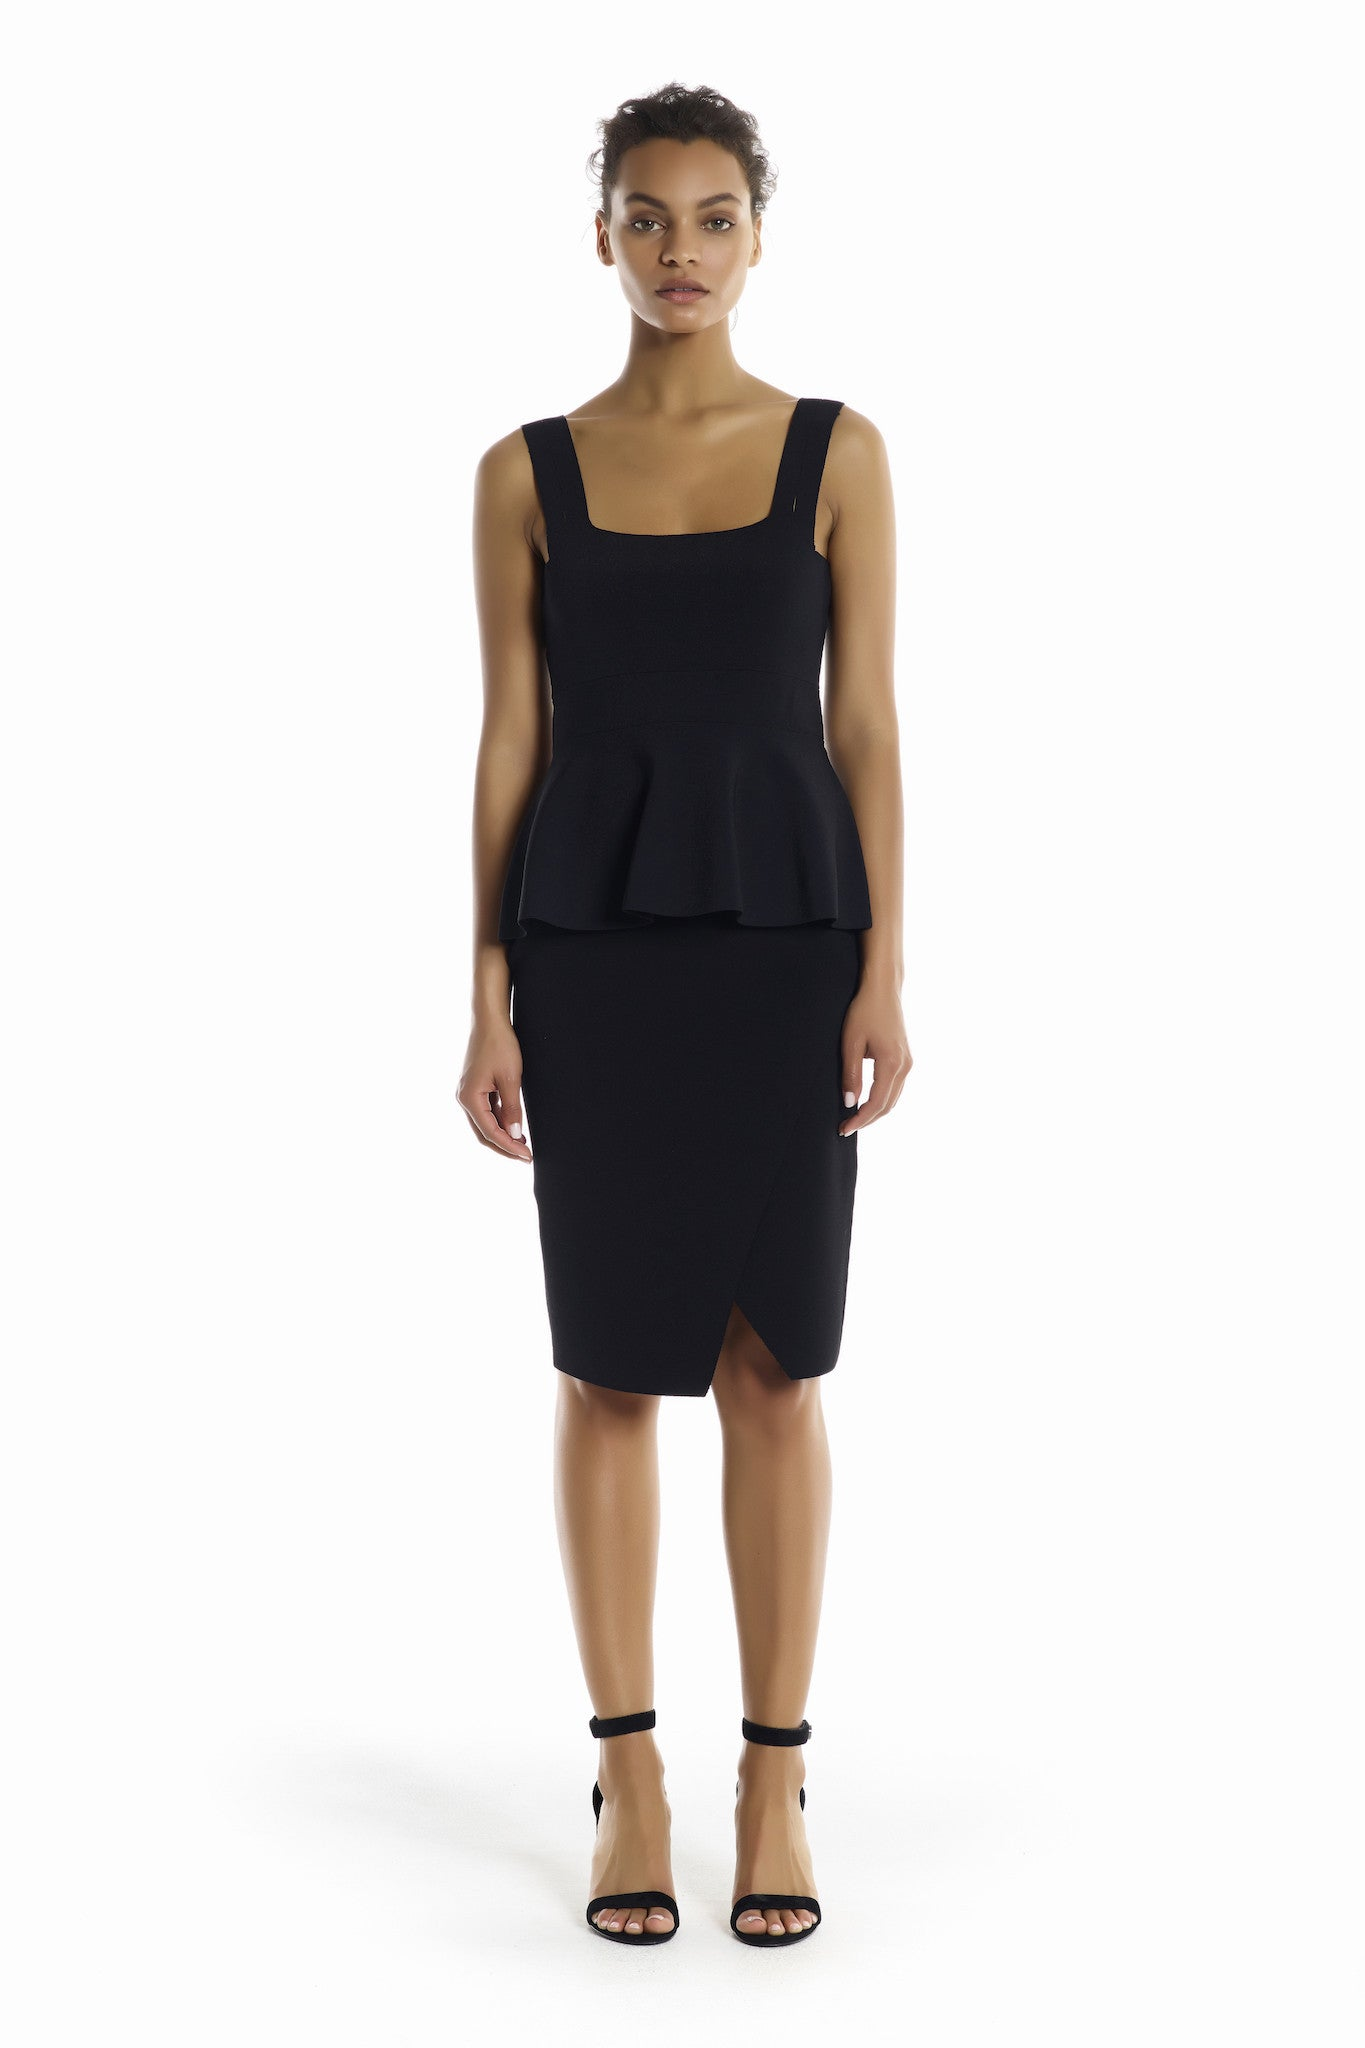 OVERLAP PENCIL SKIRT BOTTOMS by KENDALL + KYLIE